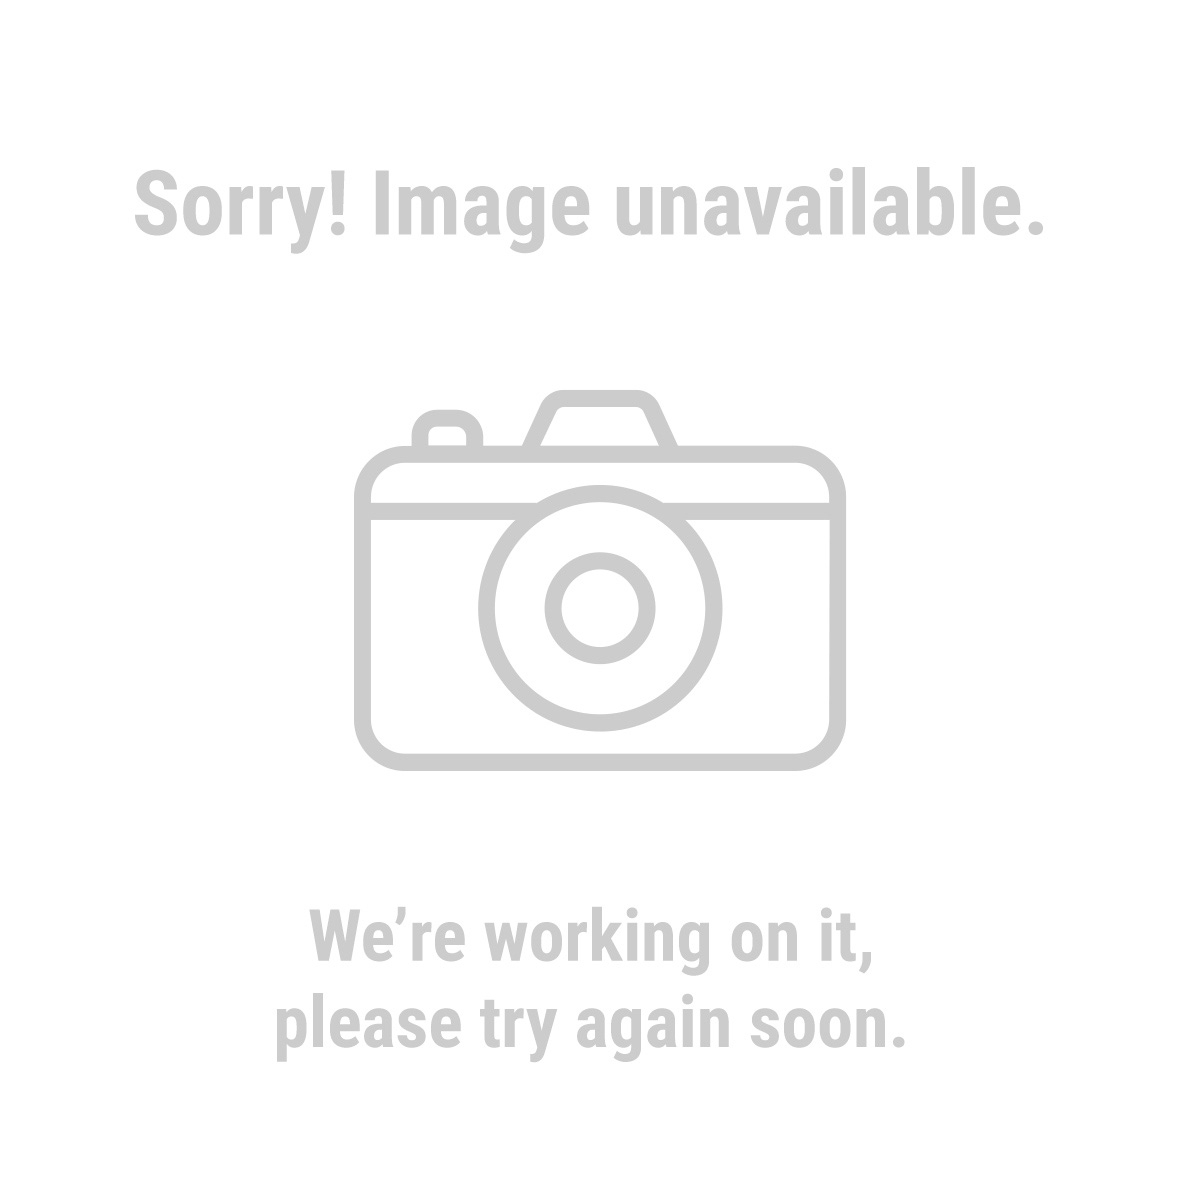 HFT 45283 25 Ft. Outdoor Extension Cord